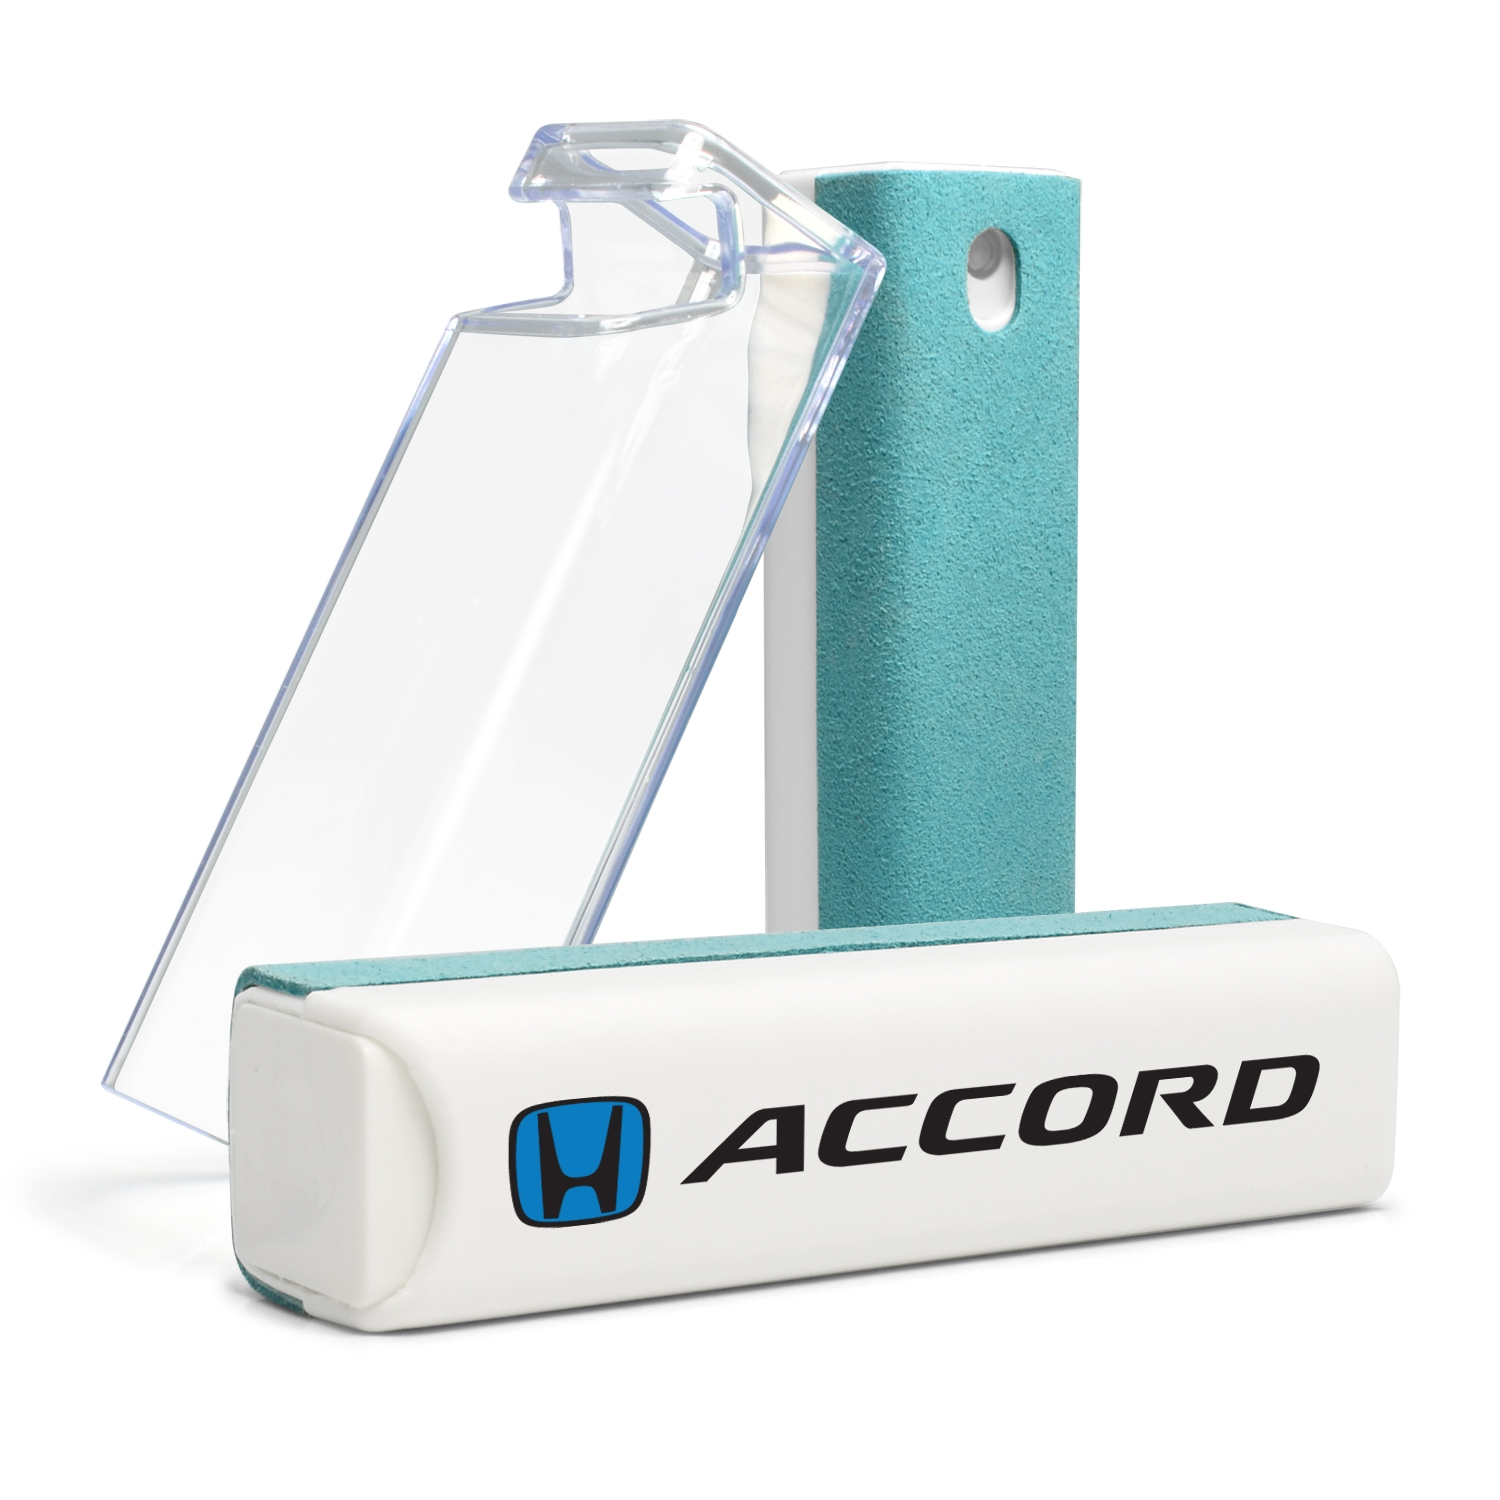 Honda Blue Logo Accord All-in-One Blue Wipe Navigation Screen Cleaner with Clear Cell Phone Stand